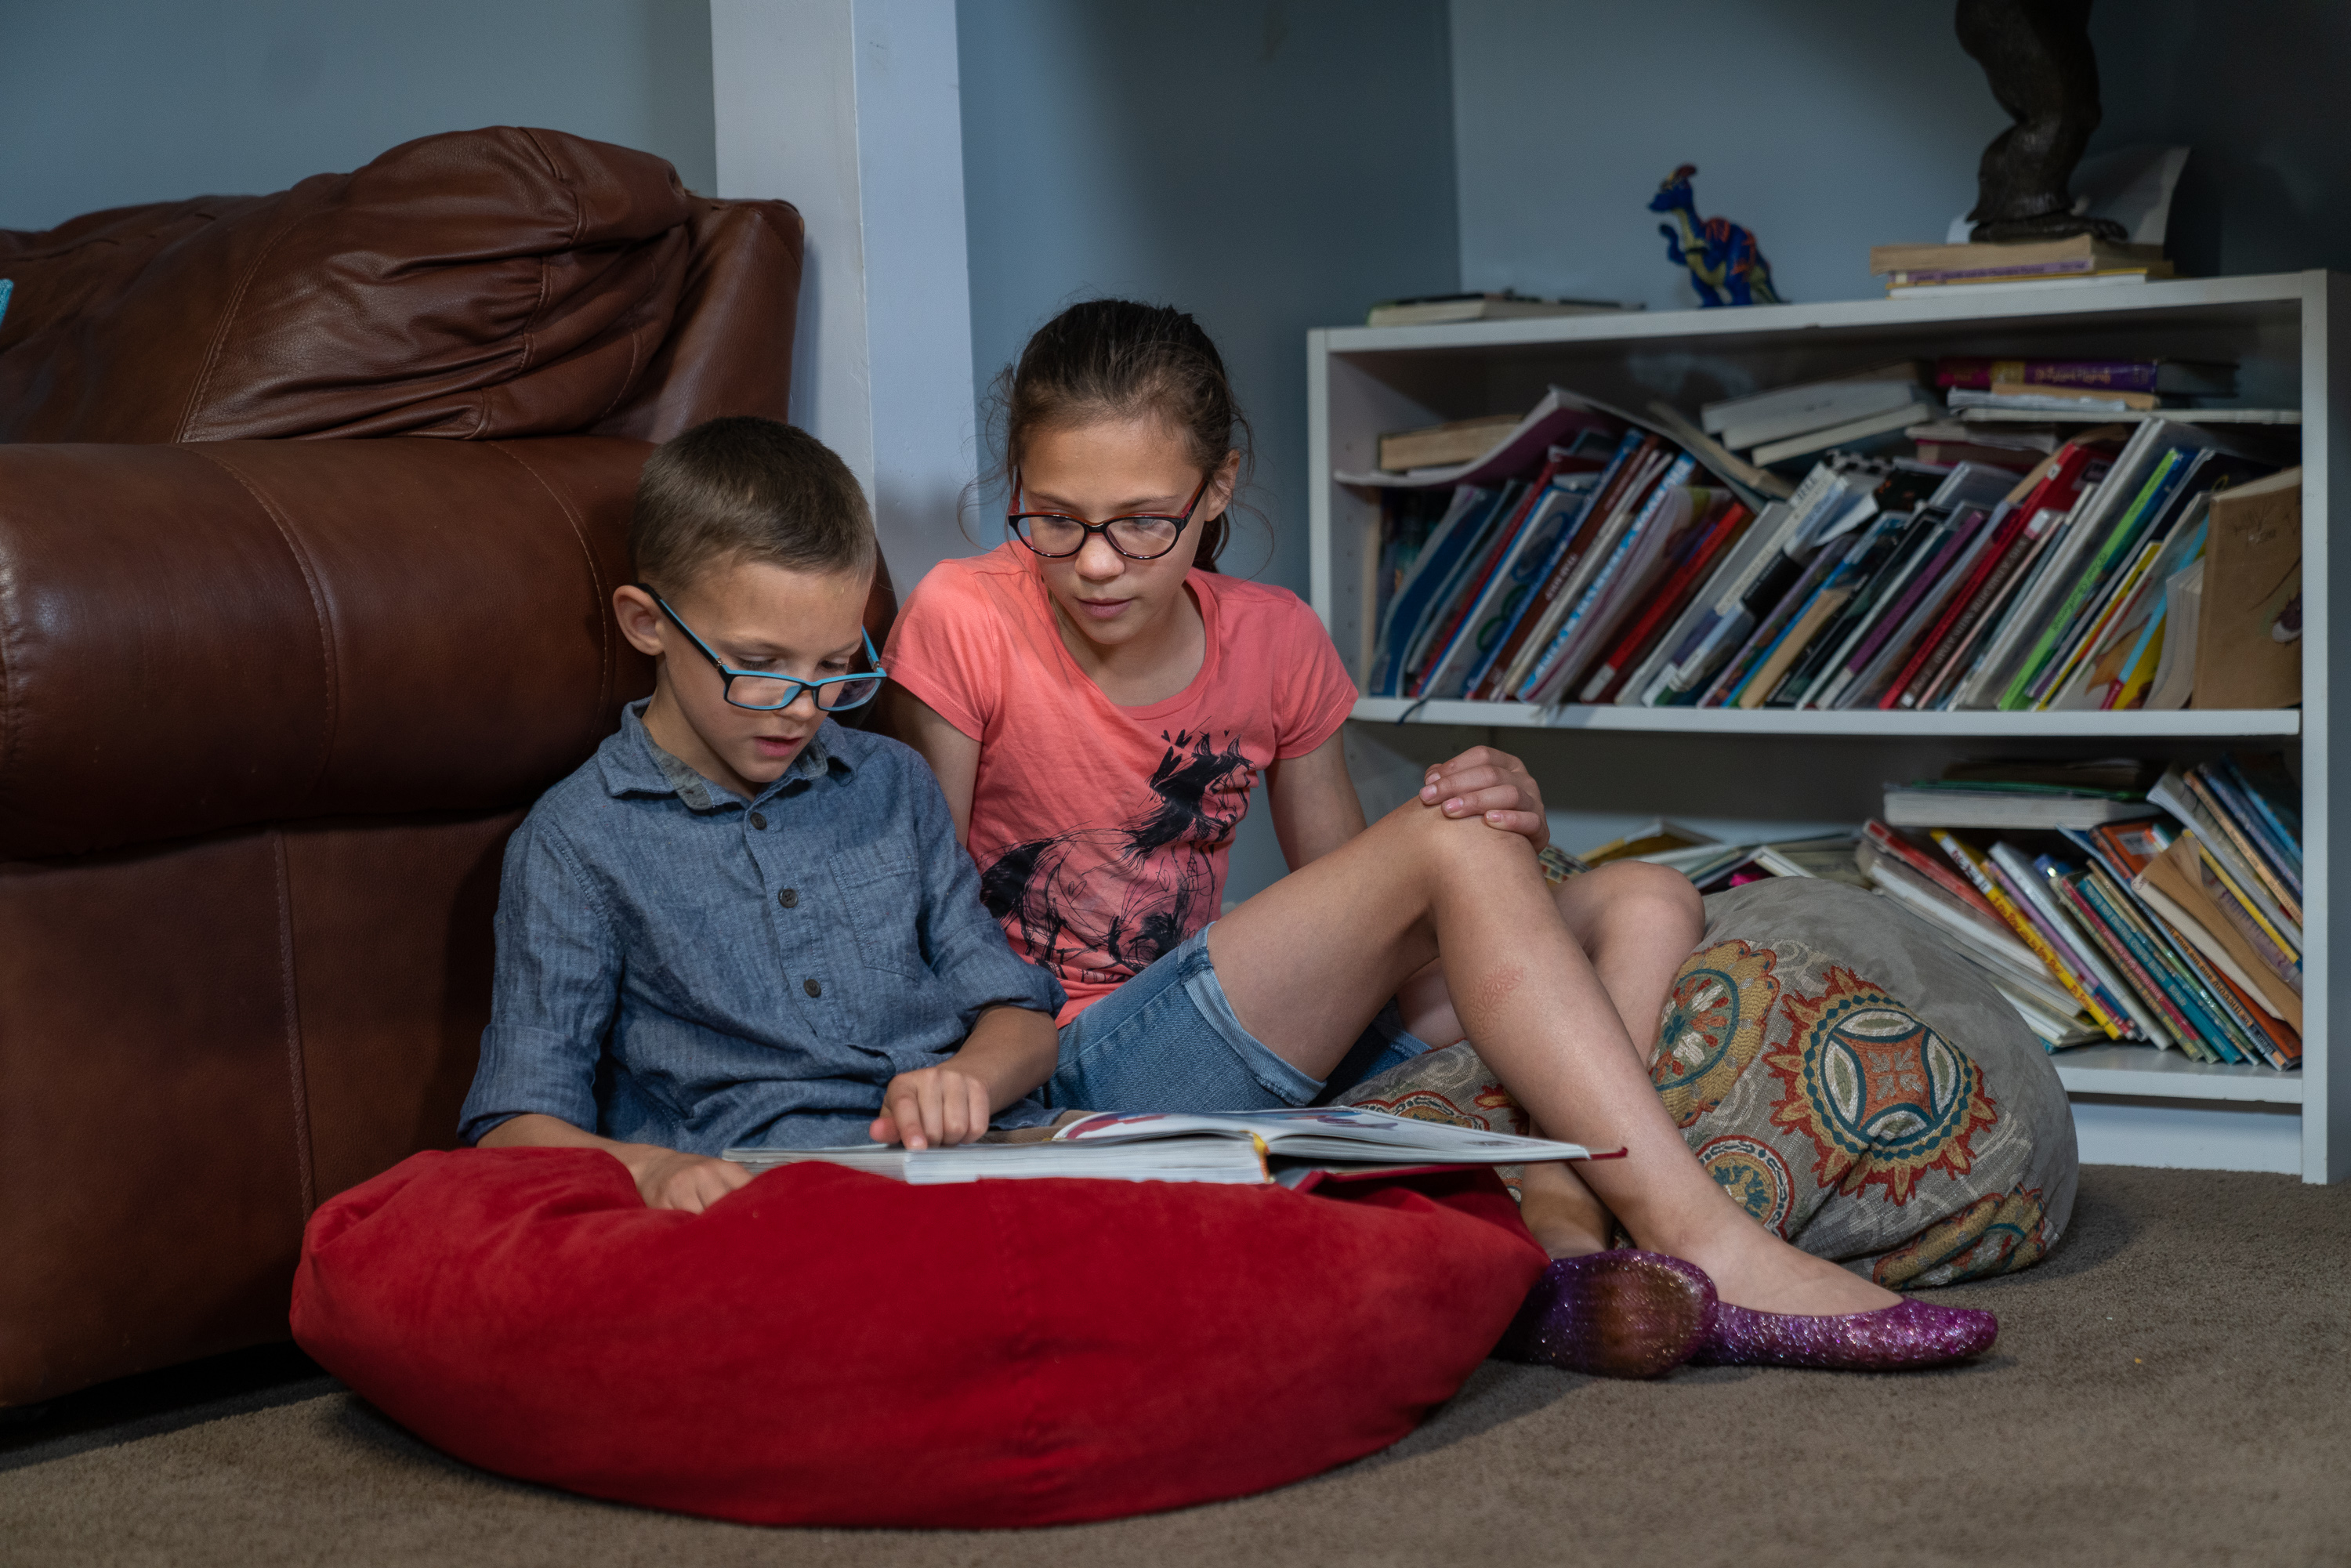 Peter, a 9-year-old from a pilot stake in Columbus, Ohio, reads aloud with his sister. As part of the Children and Youth program, Peter set a goal to pass his reading test at school.